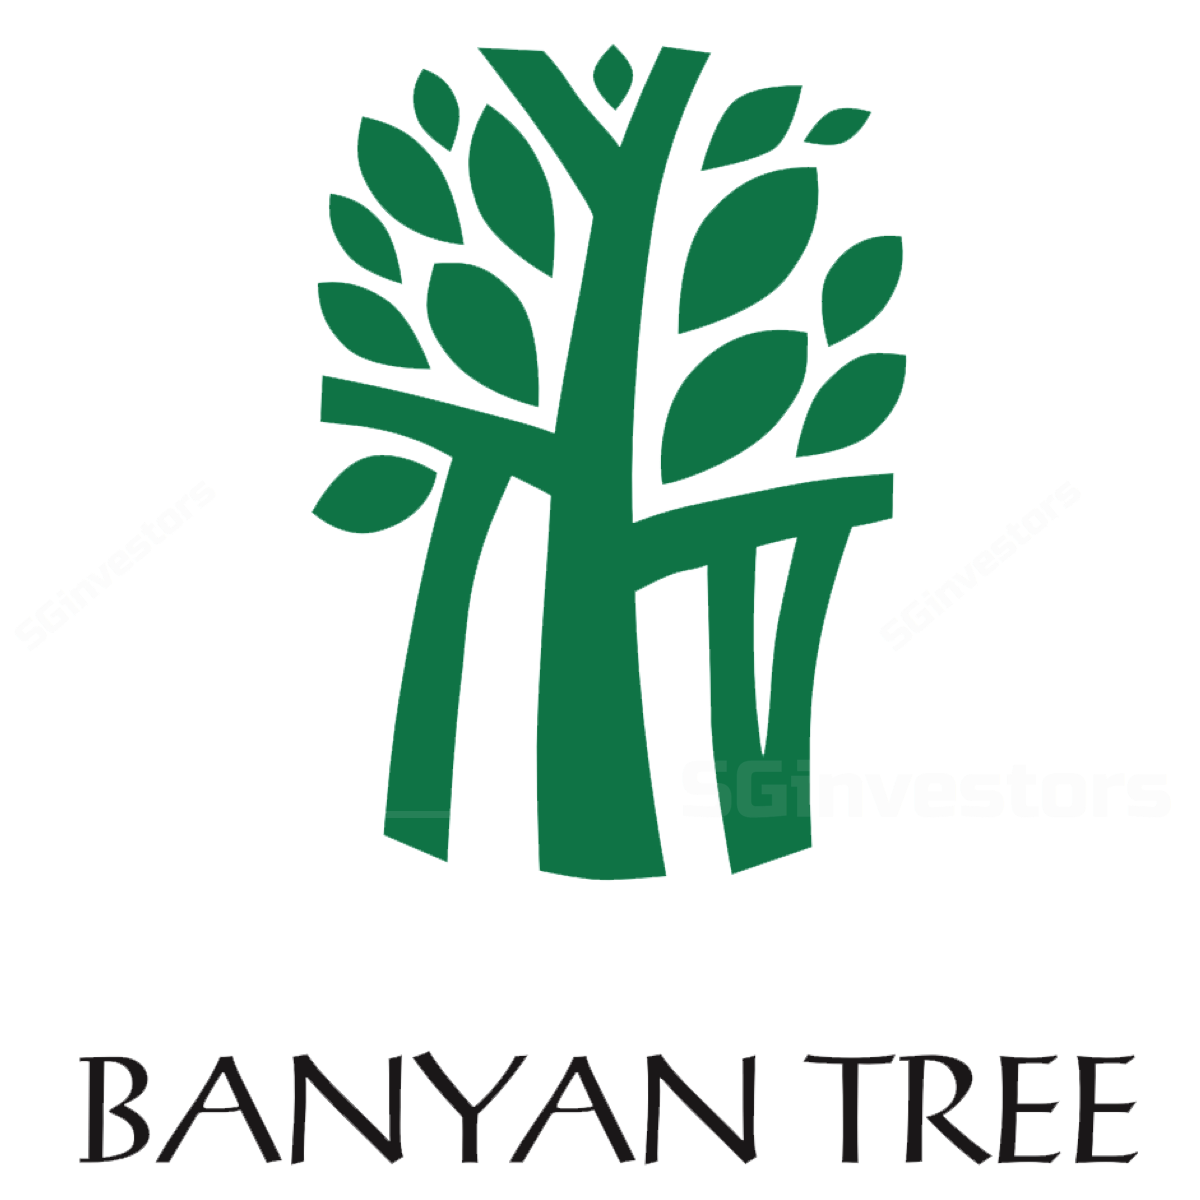 Banyan Tree Holdings (BTH SP) - UOB Kay Hian 2017-09-27: Key Takeaways From Marketing Trip: Relaxing Beneath The Banyan Tree